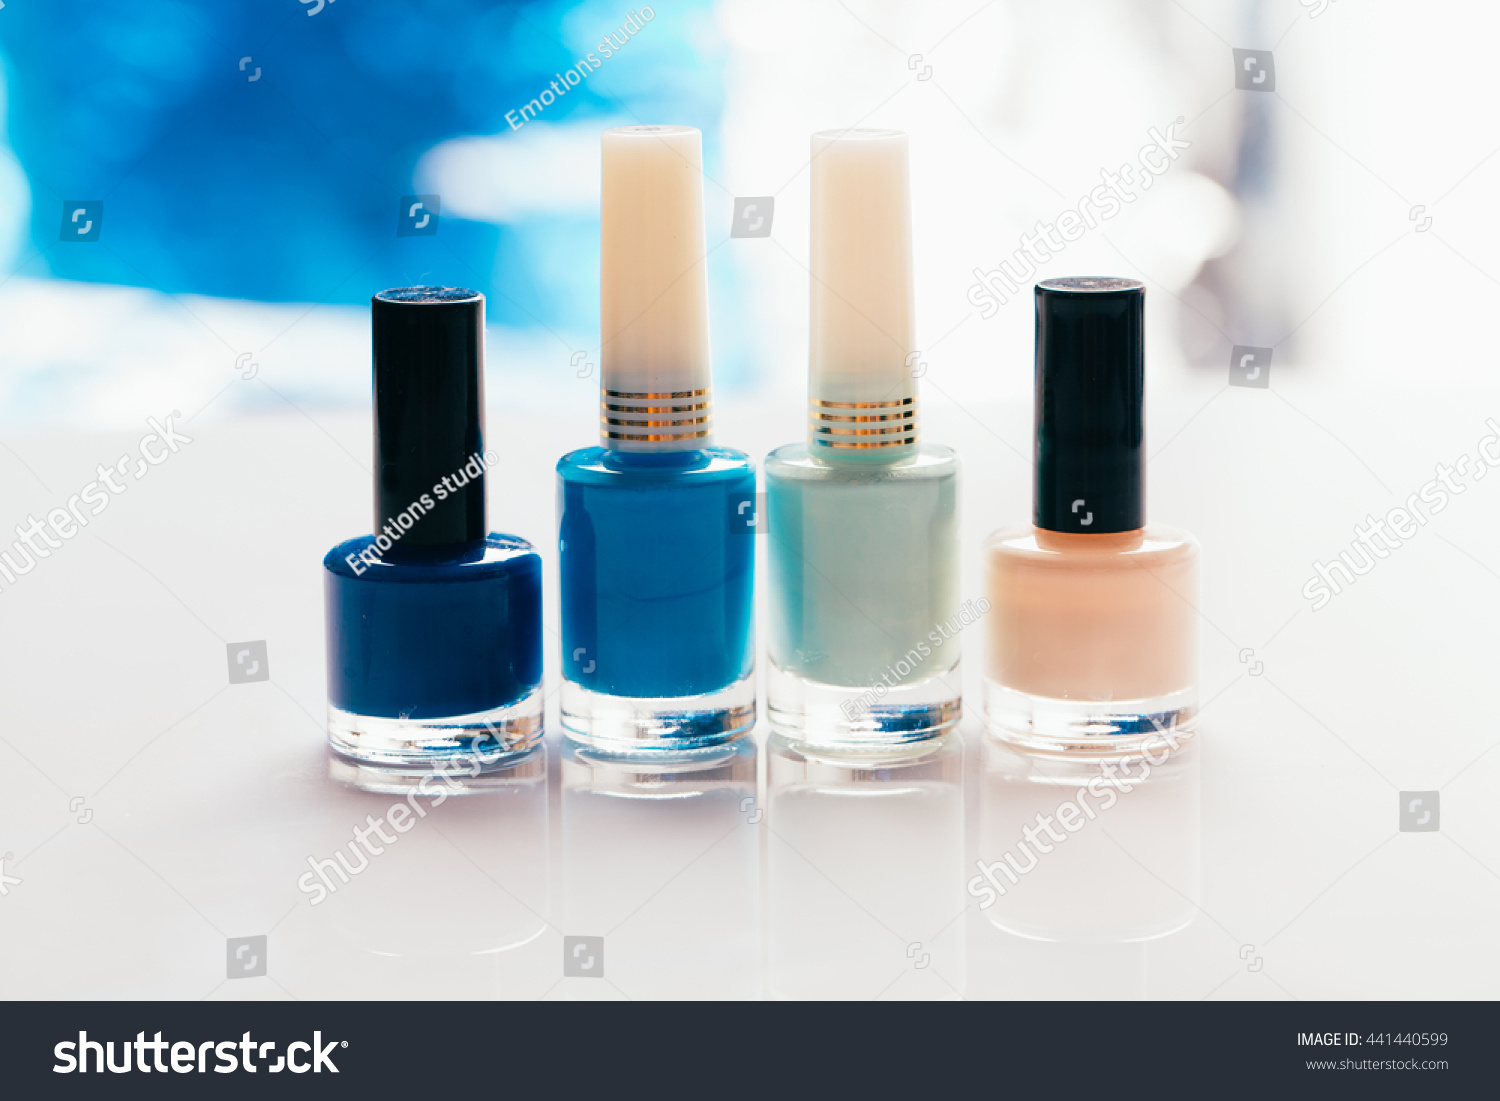 Shades Blue Nail Polish On Light Stock Photo & Image (Royalty-Free ...